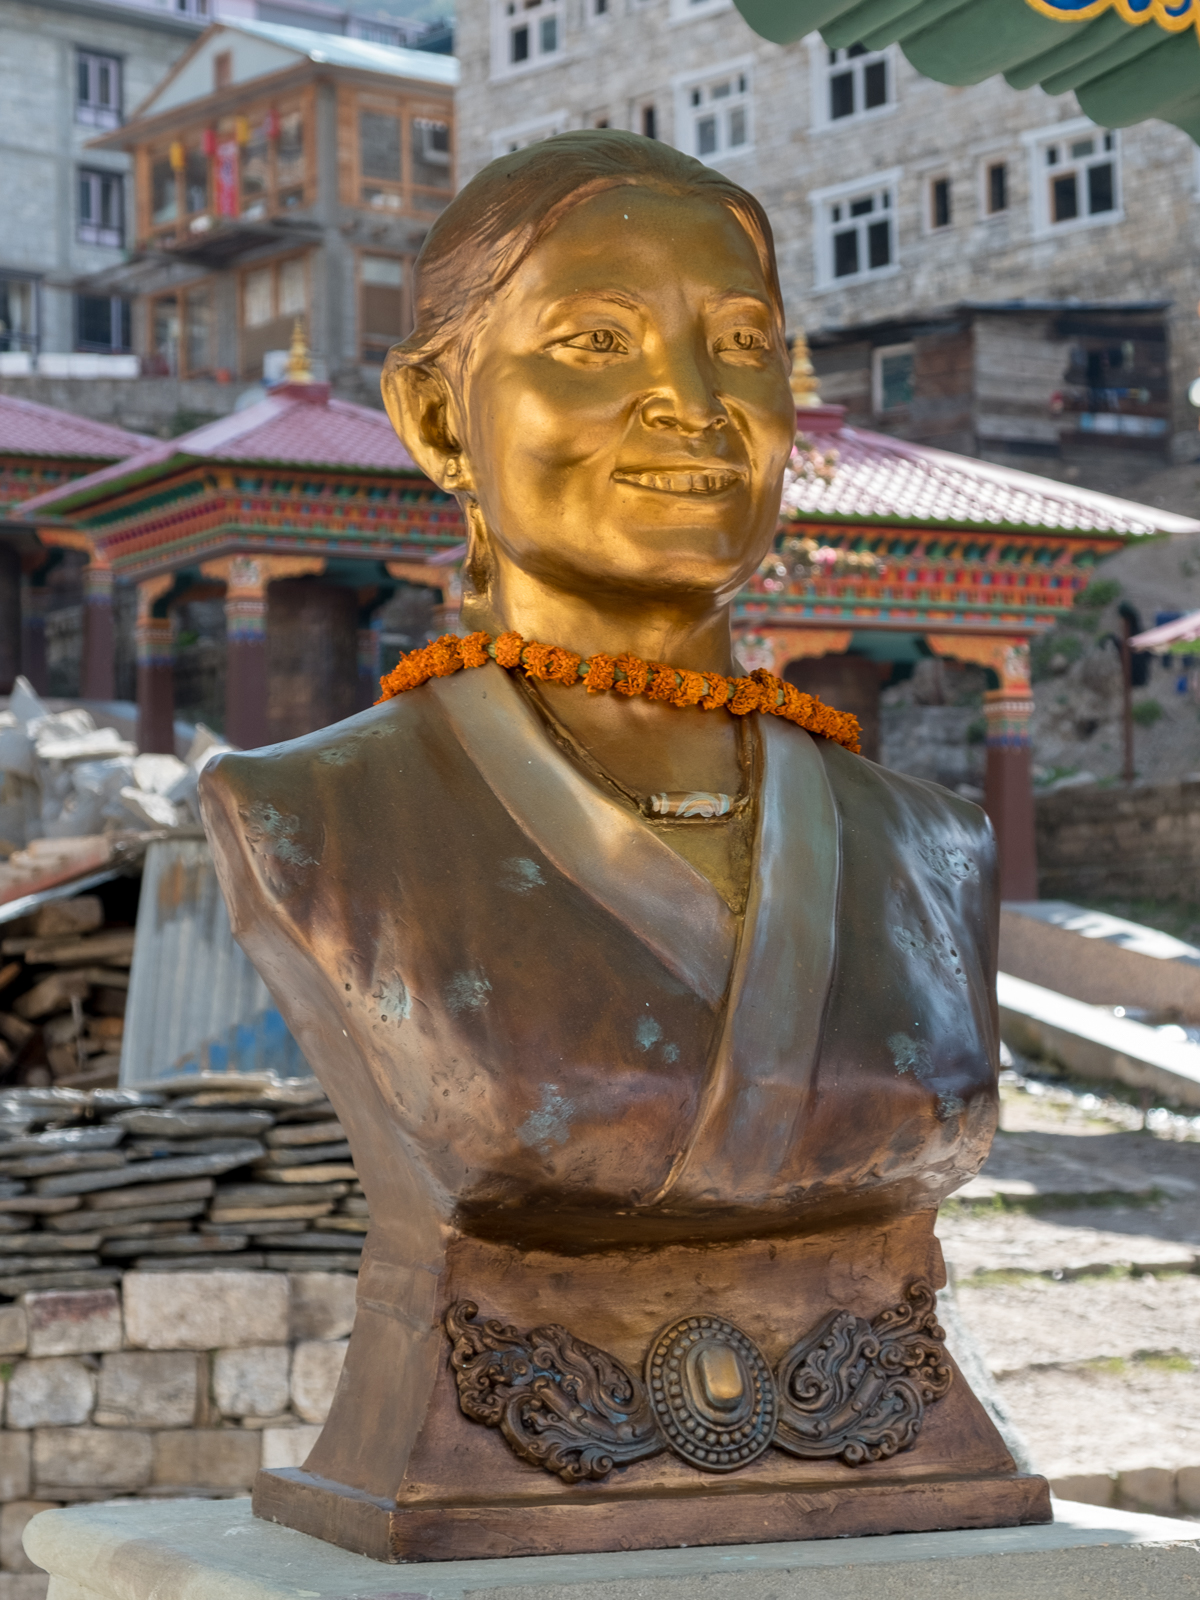 Statue of Pasang Lhamu Sherpa, the first Nepali woman to summit Everest, in Namche Bazaar.